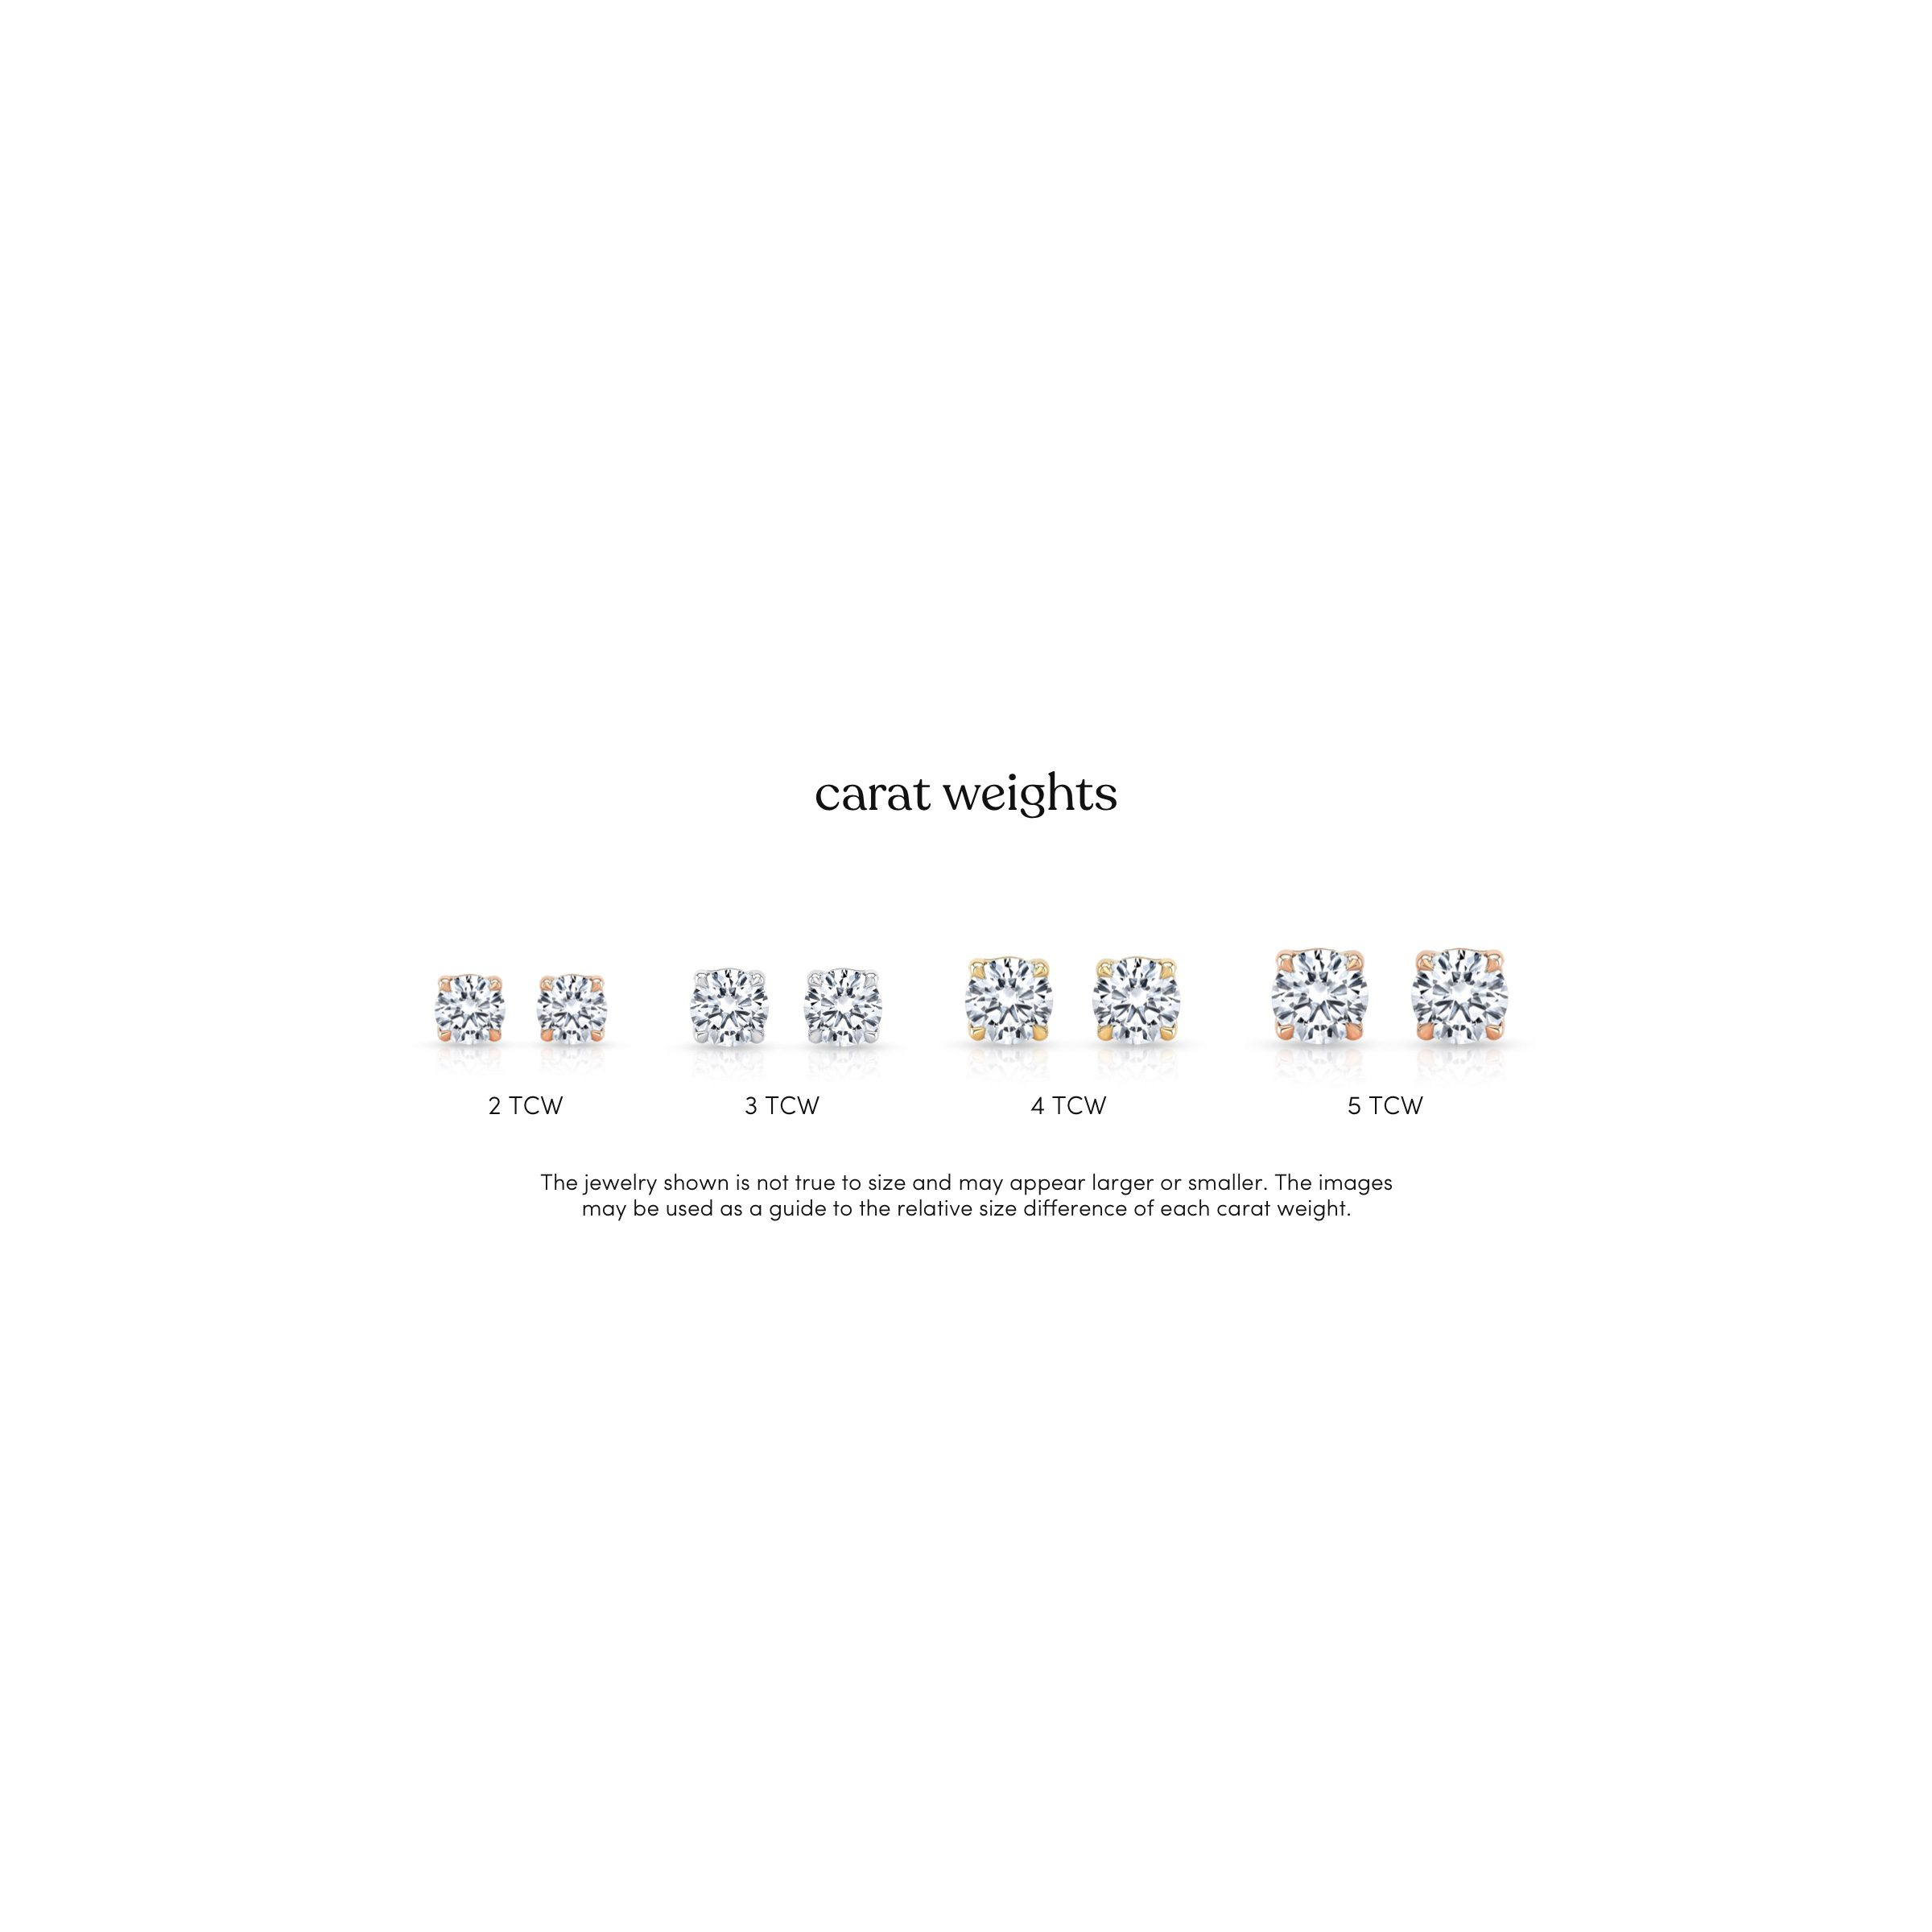 Lab Grown Diamond Earrings Total Carat Weight Comparison Infographic from Oui by Jean Dousset